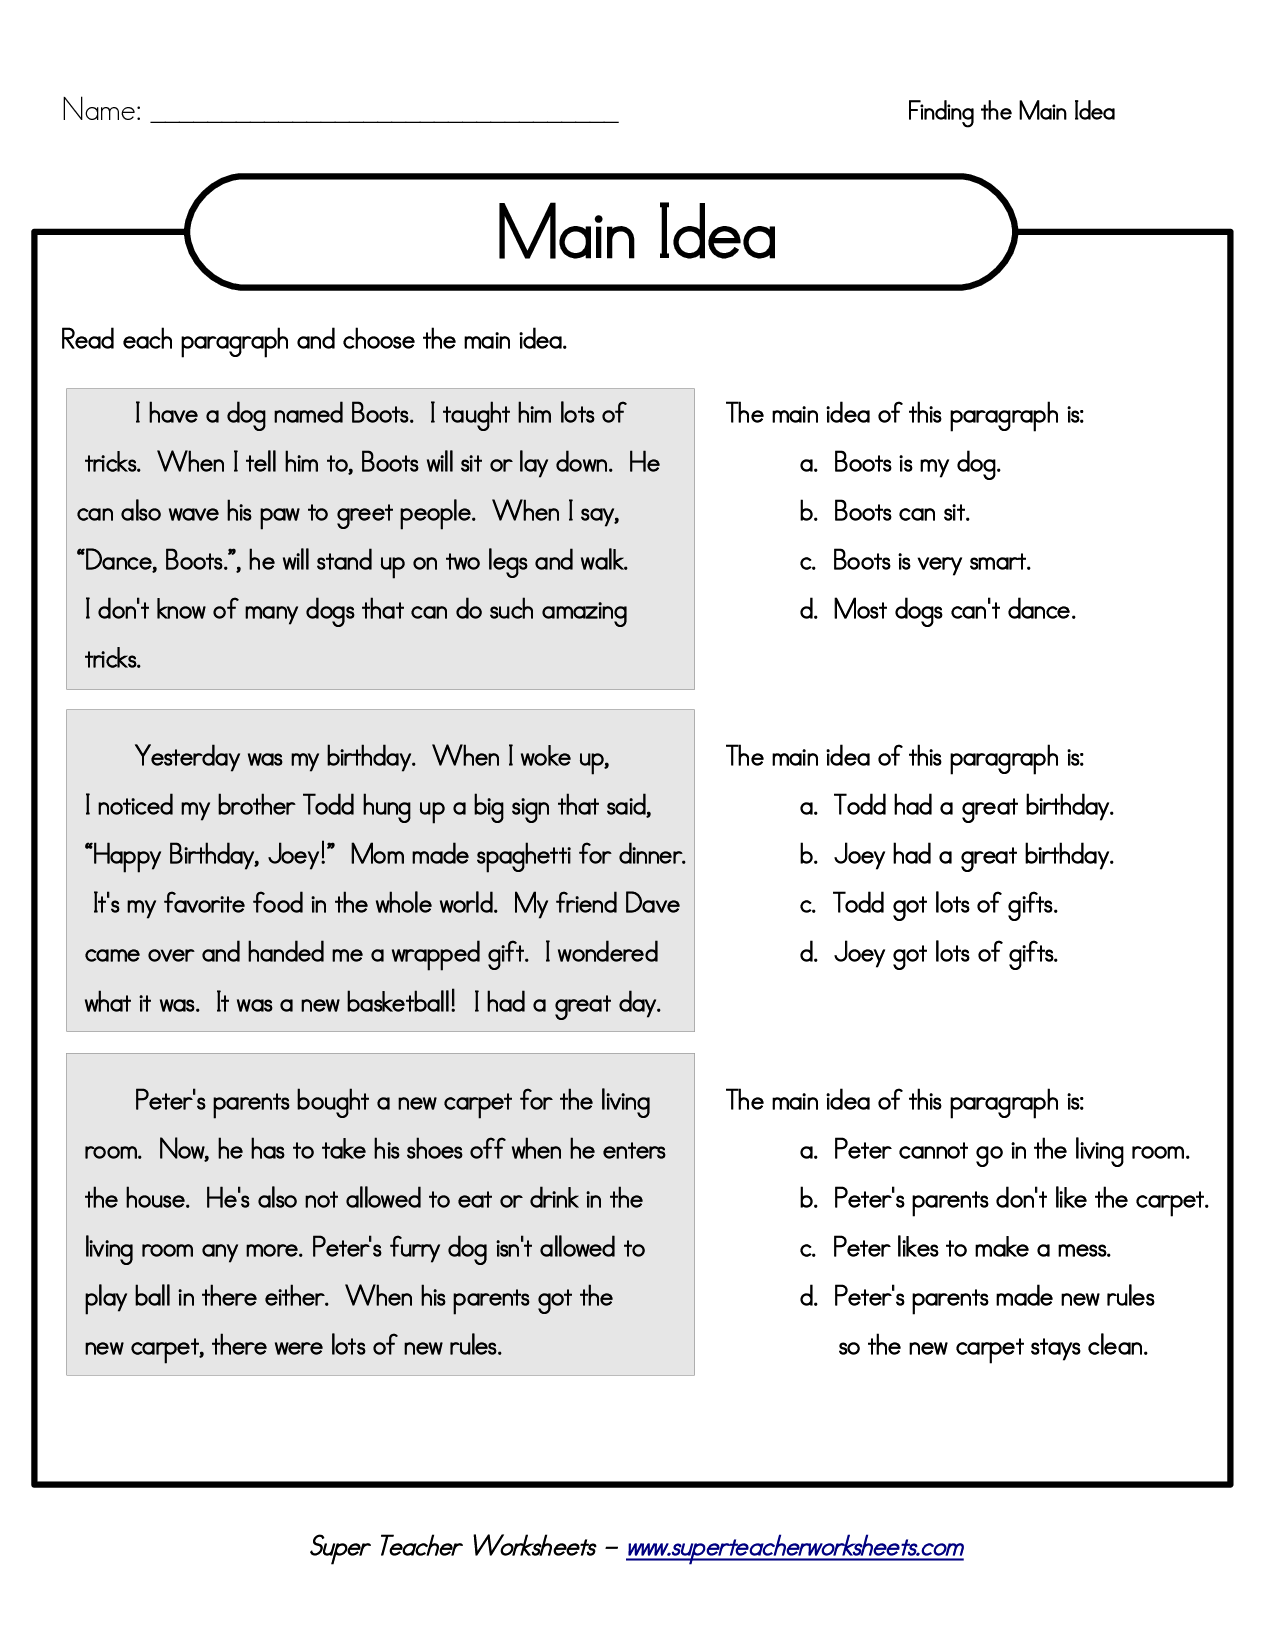 Worksheets Super Teacher Worksheets 3rd Grade main idea shared reading practice used this as guided on the promethean board color coded underlining system and the